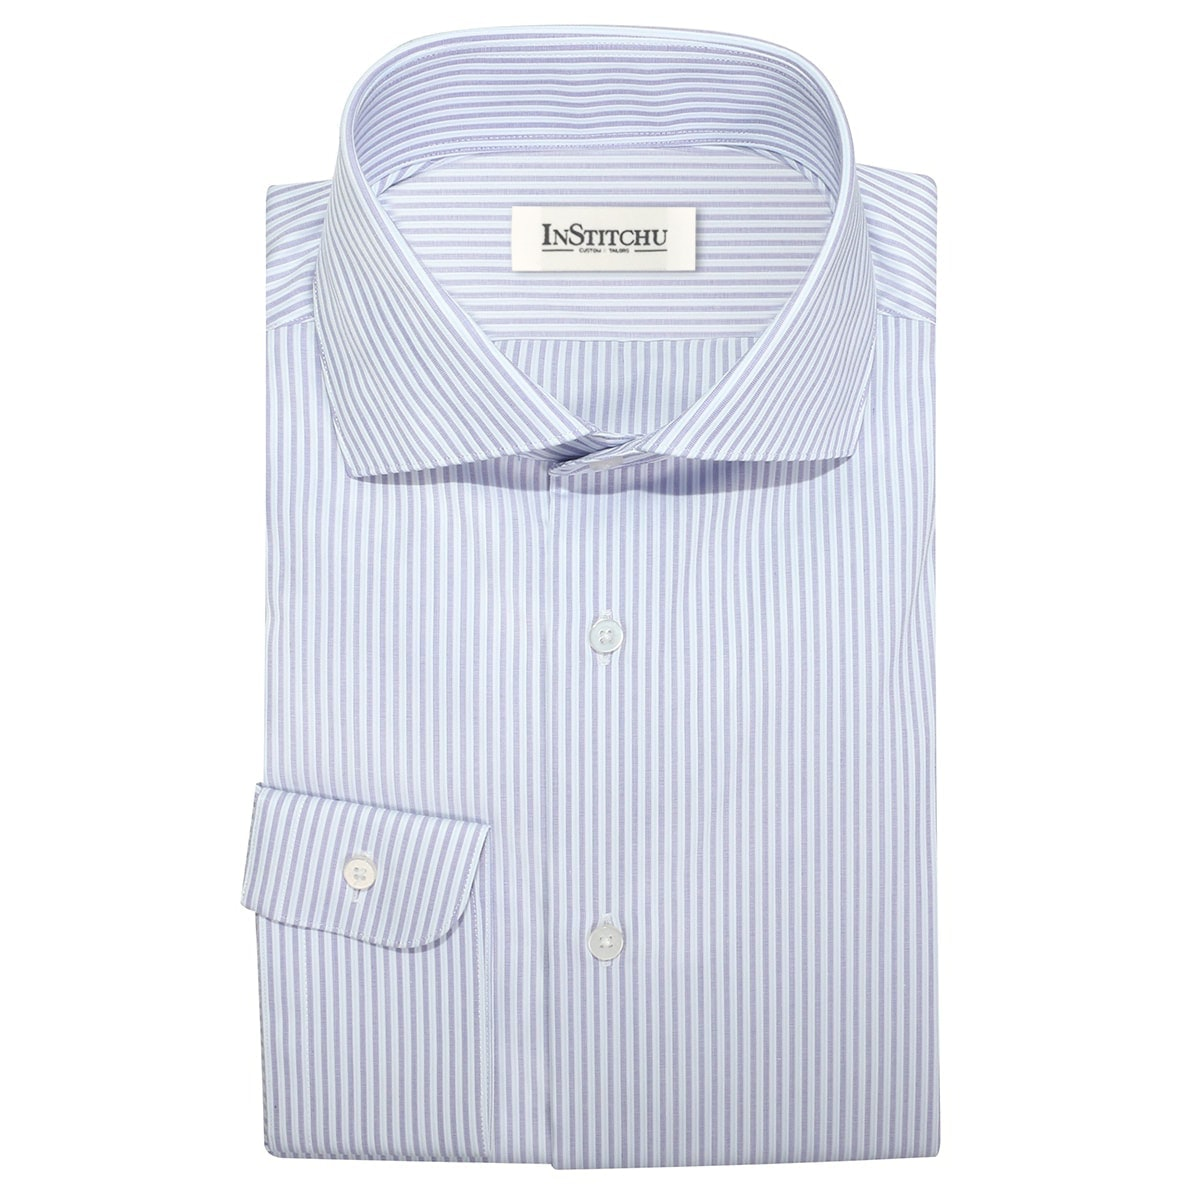 InStitchu Collection The Bassett Lavender Stripe Shirt